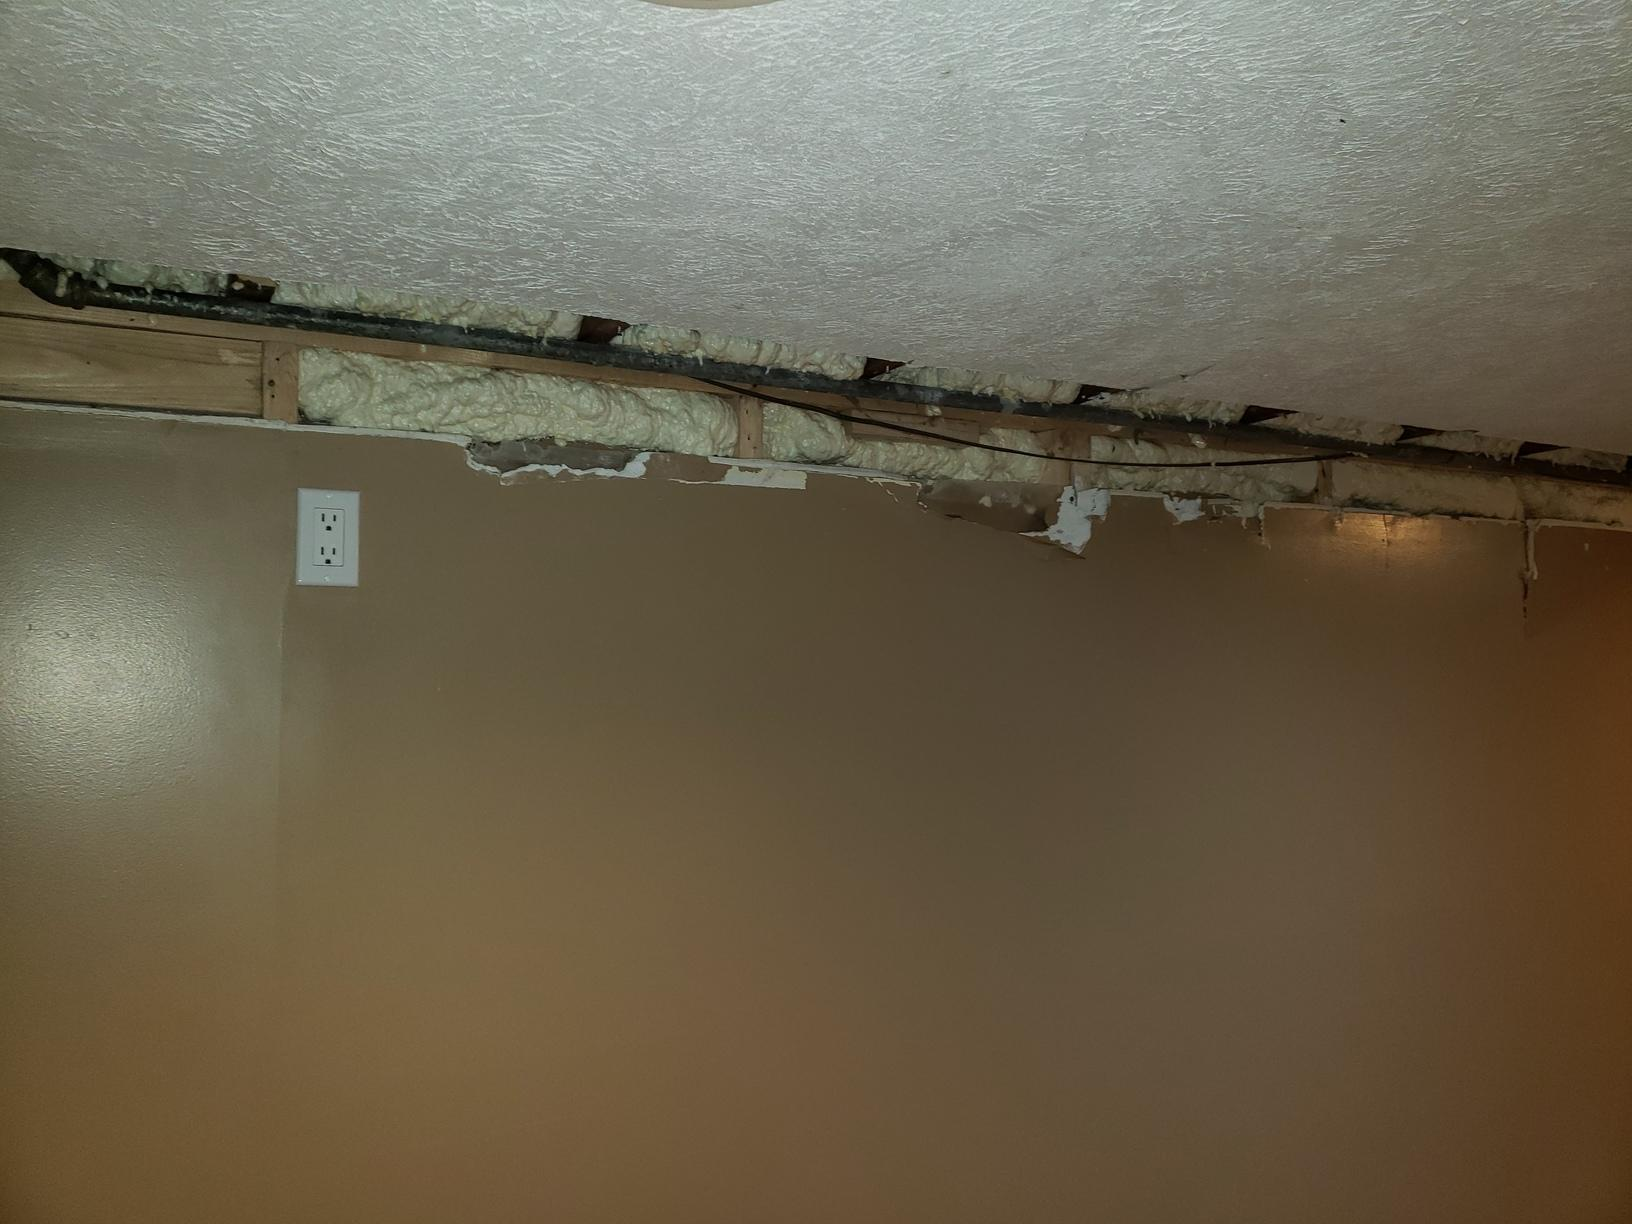 Two-Part Foam Install After Water Pipe Burst in Basement Wall of Home in Omaha, NE - After Photo